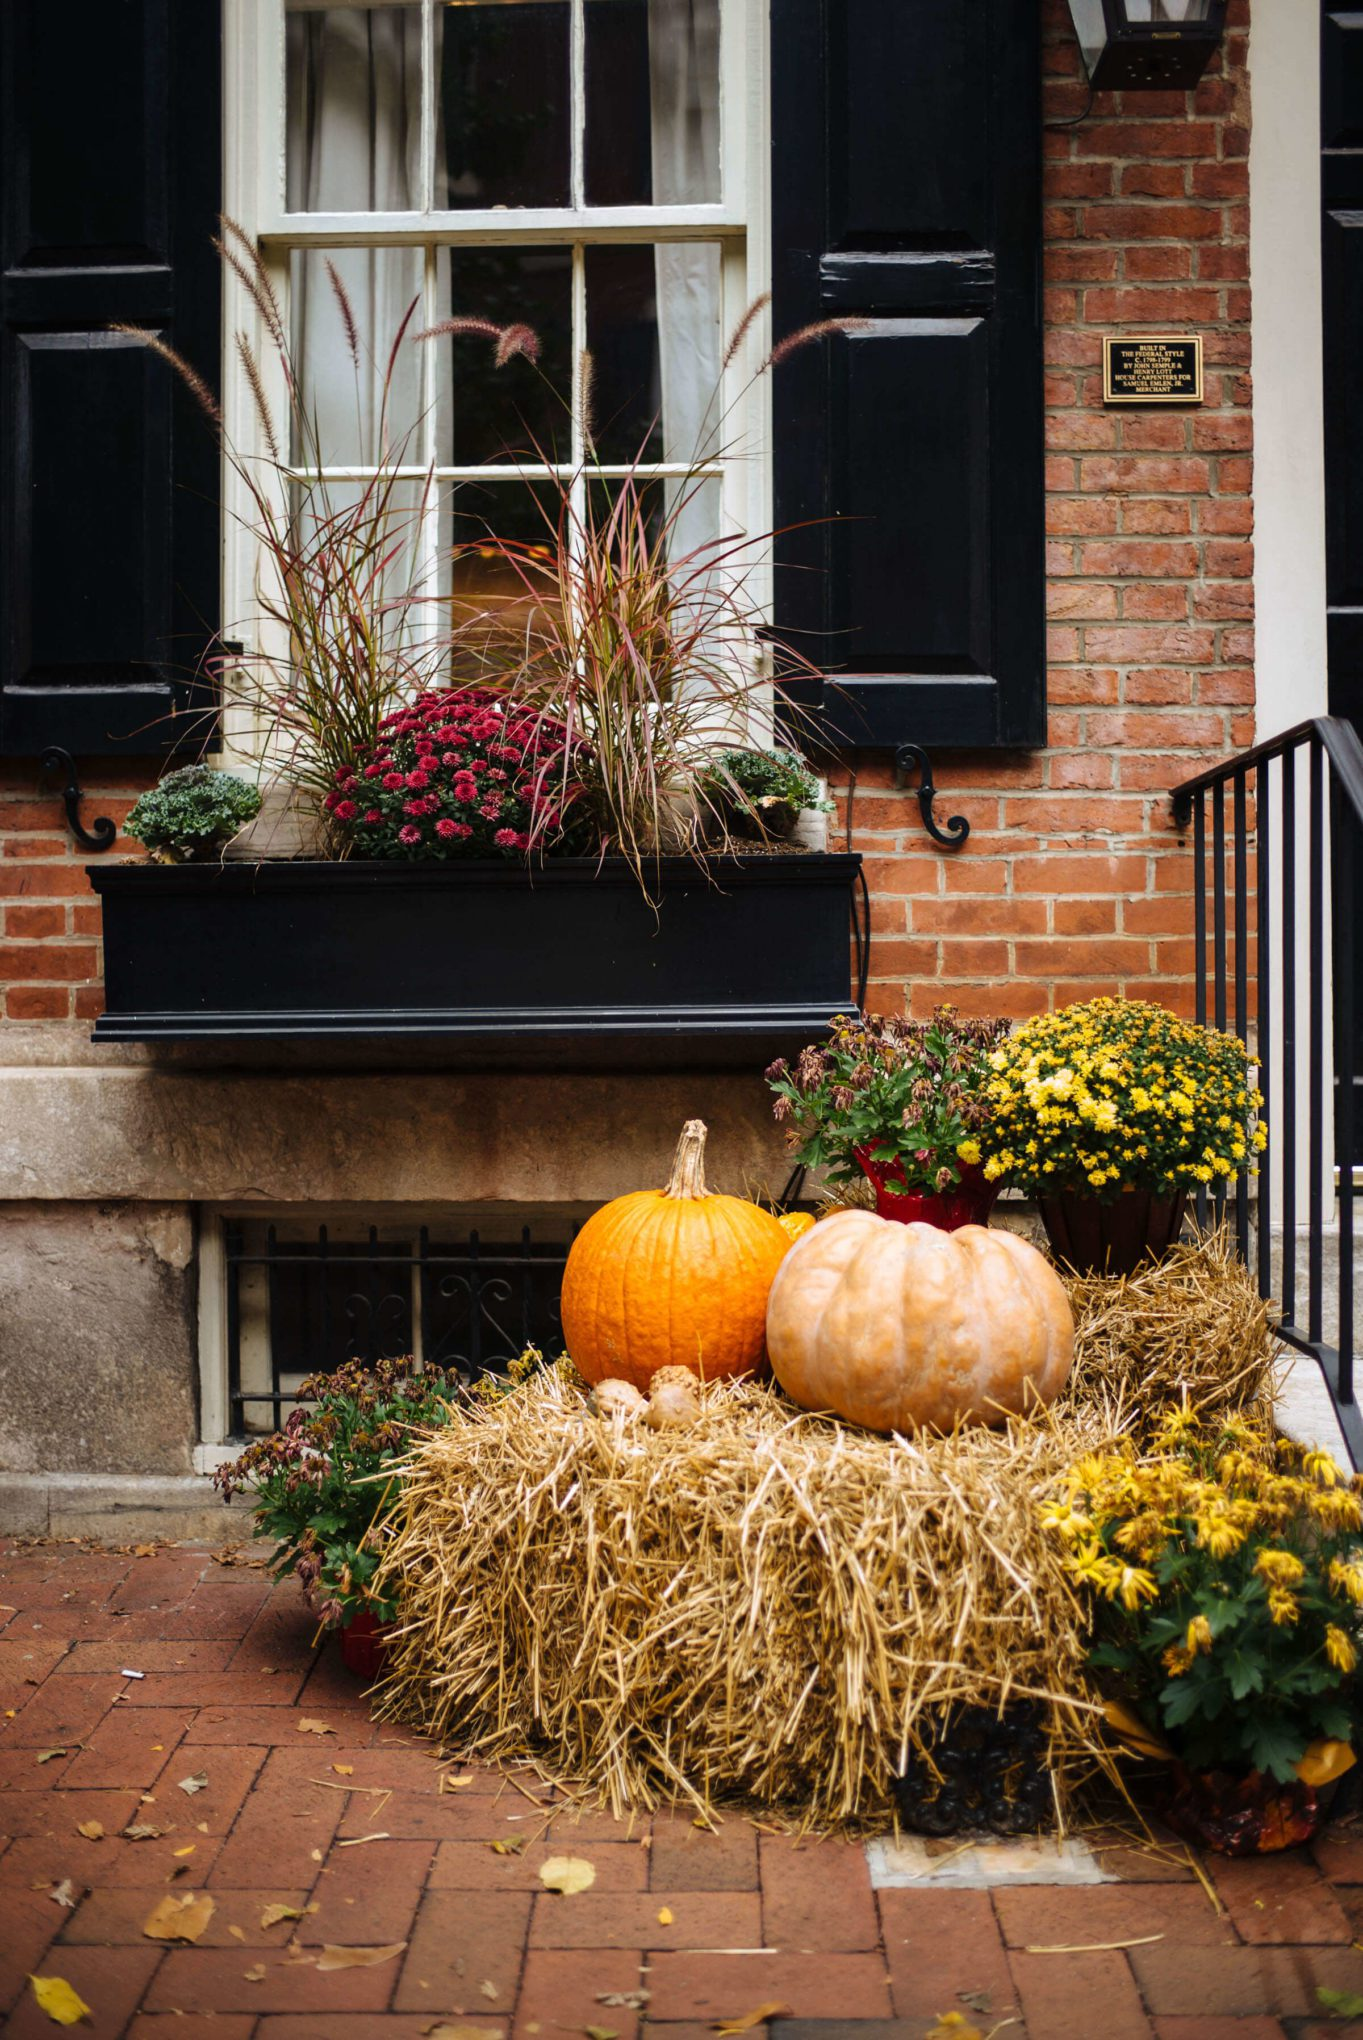 Visit Philadelphia for some of the best food and historical sites #thetasteedit #travel #philadelphia #history #pumpkin